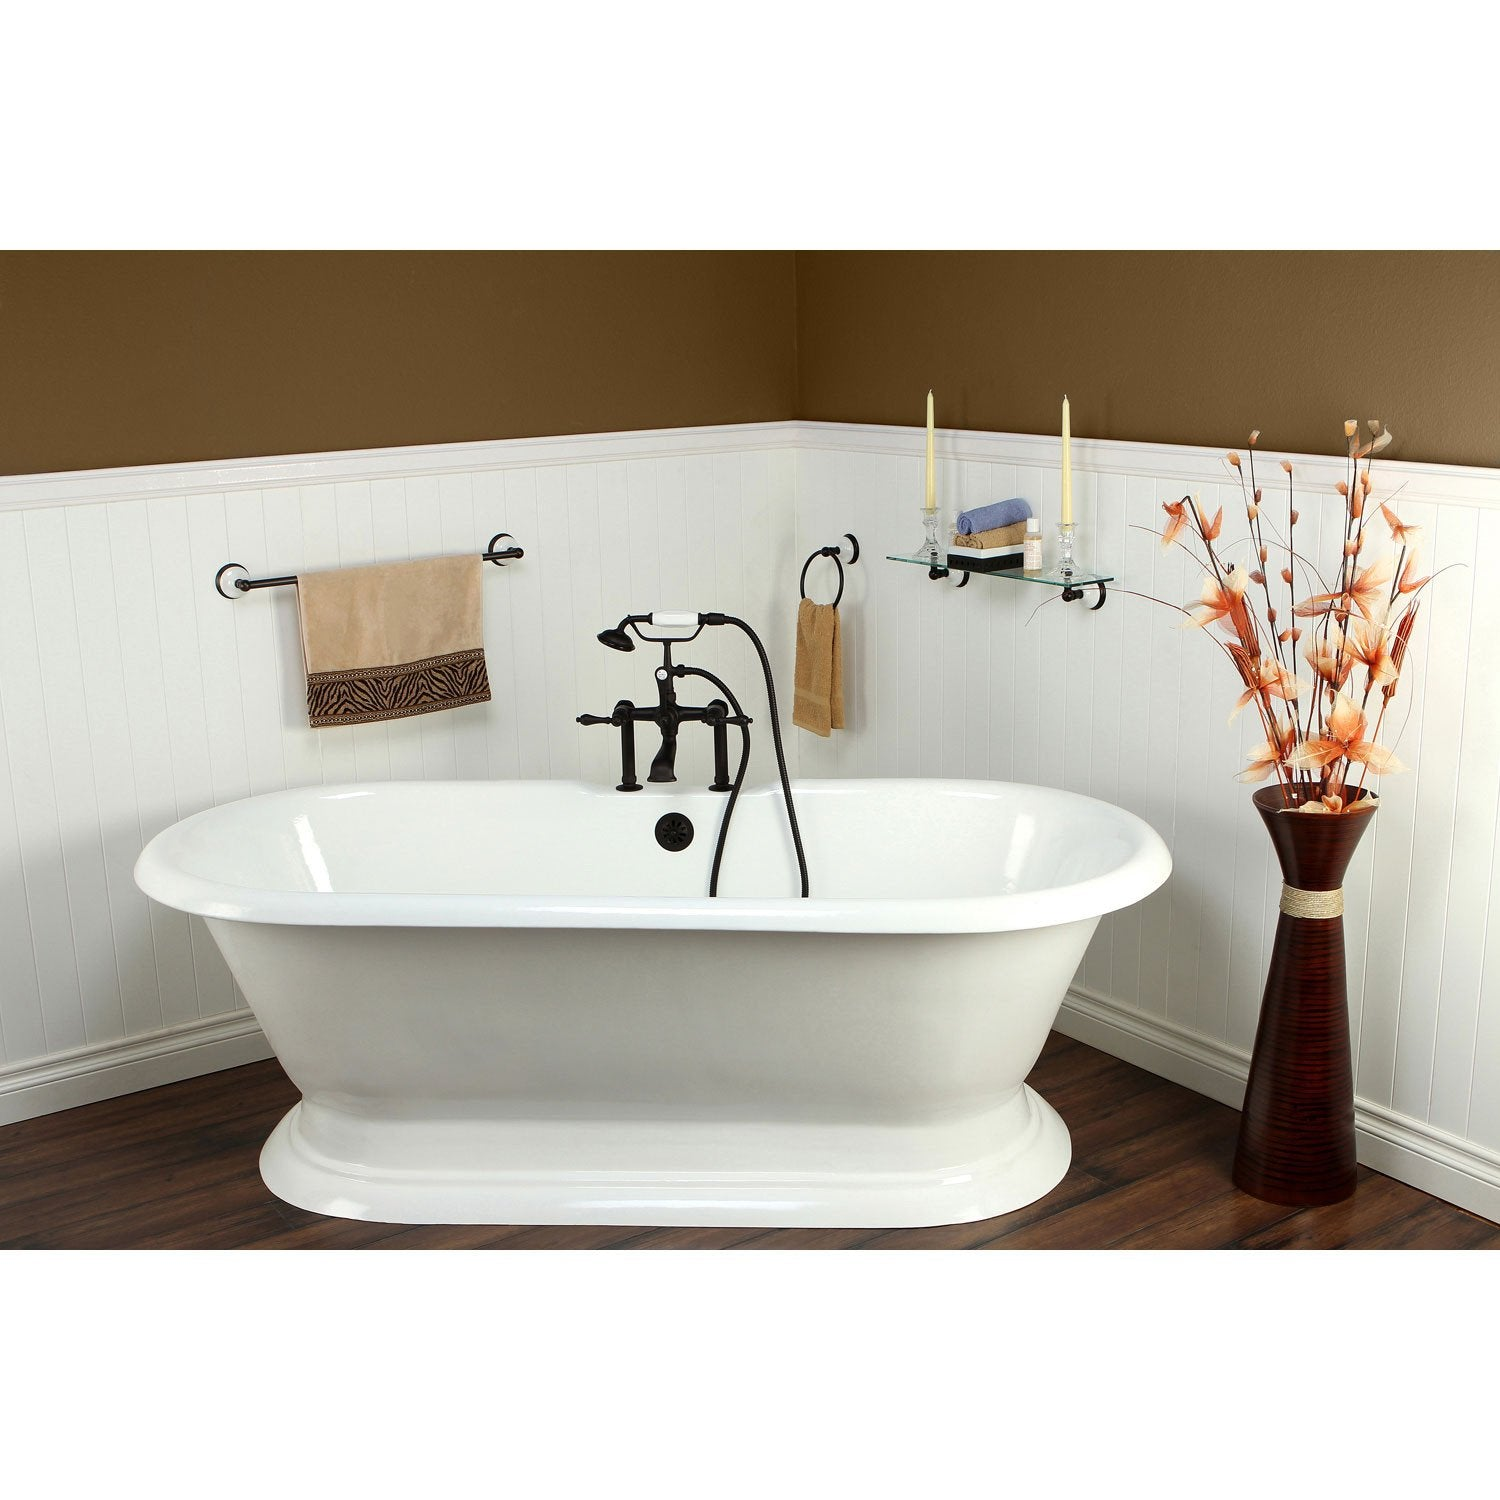 72 Freestanding Tub with Oil Rubbed Bronze Tub Faucet Hardware